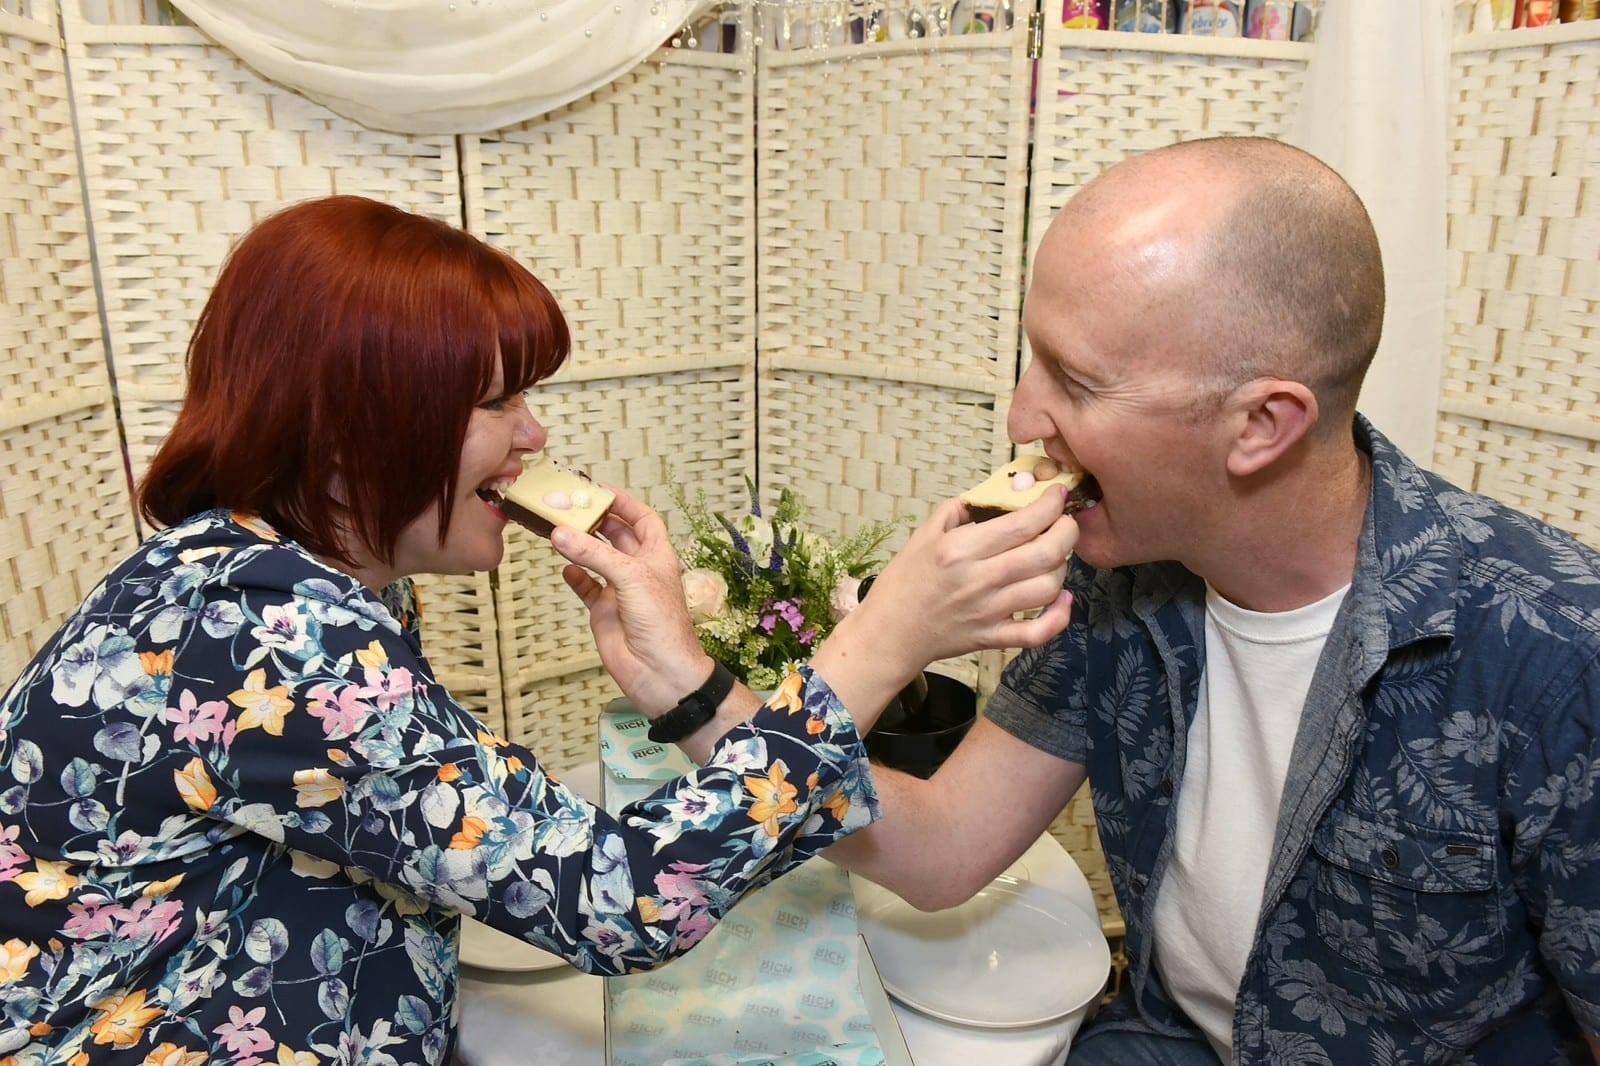 Husband Treated His Wife To A 'Spar Day' On Their Anniversary – A Posh Meal In The SHOP Where They Met